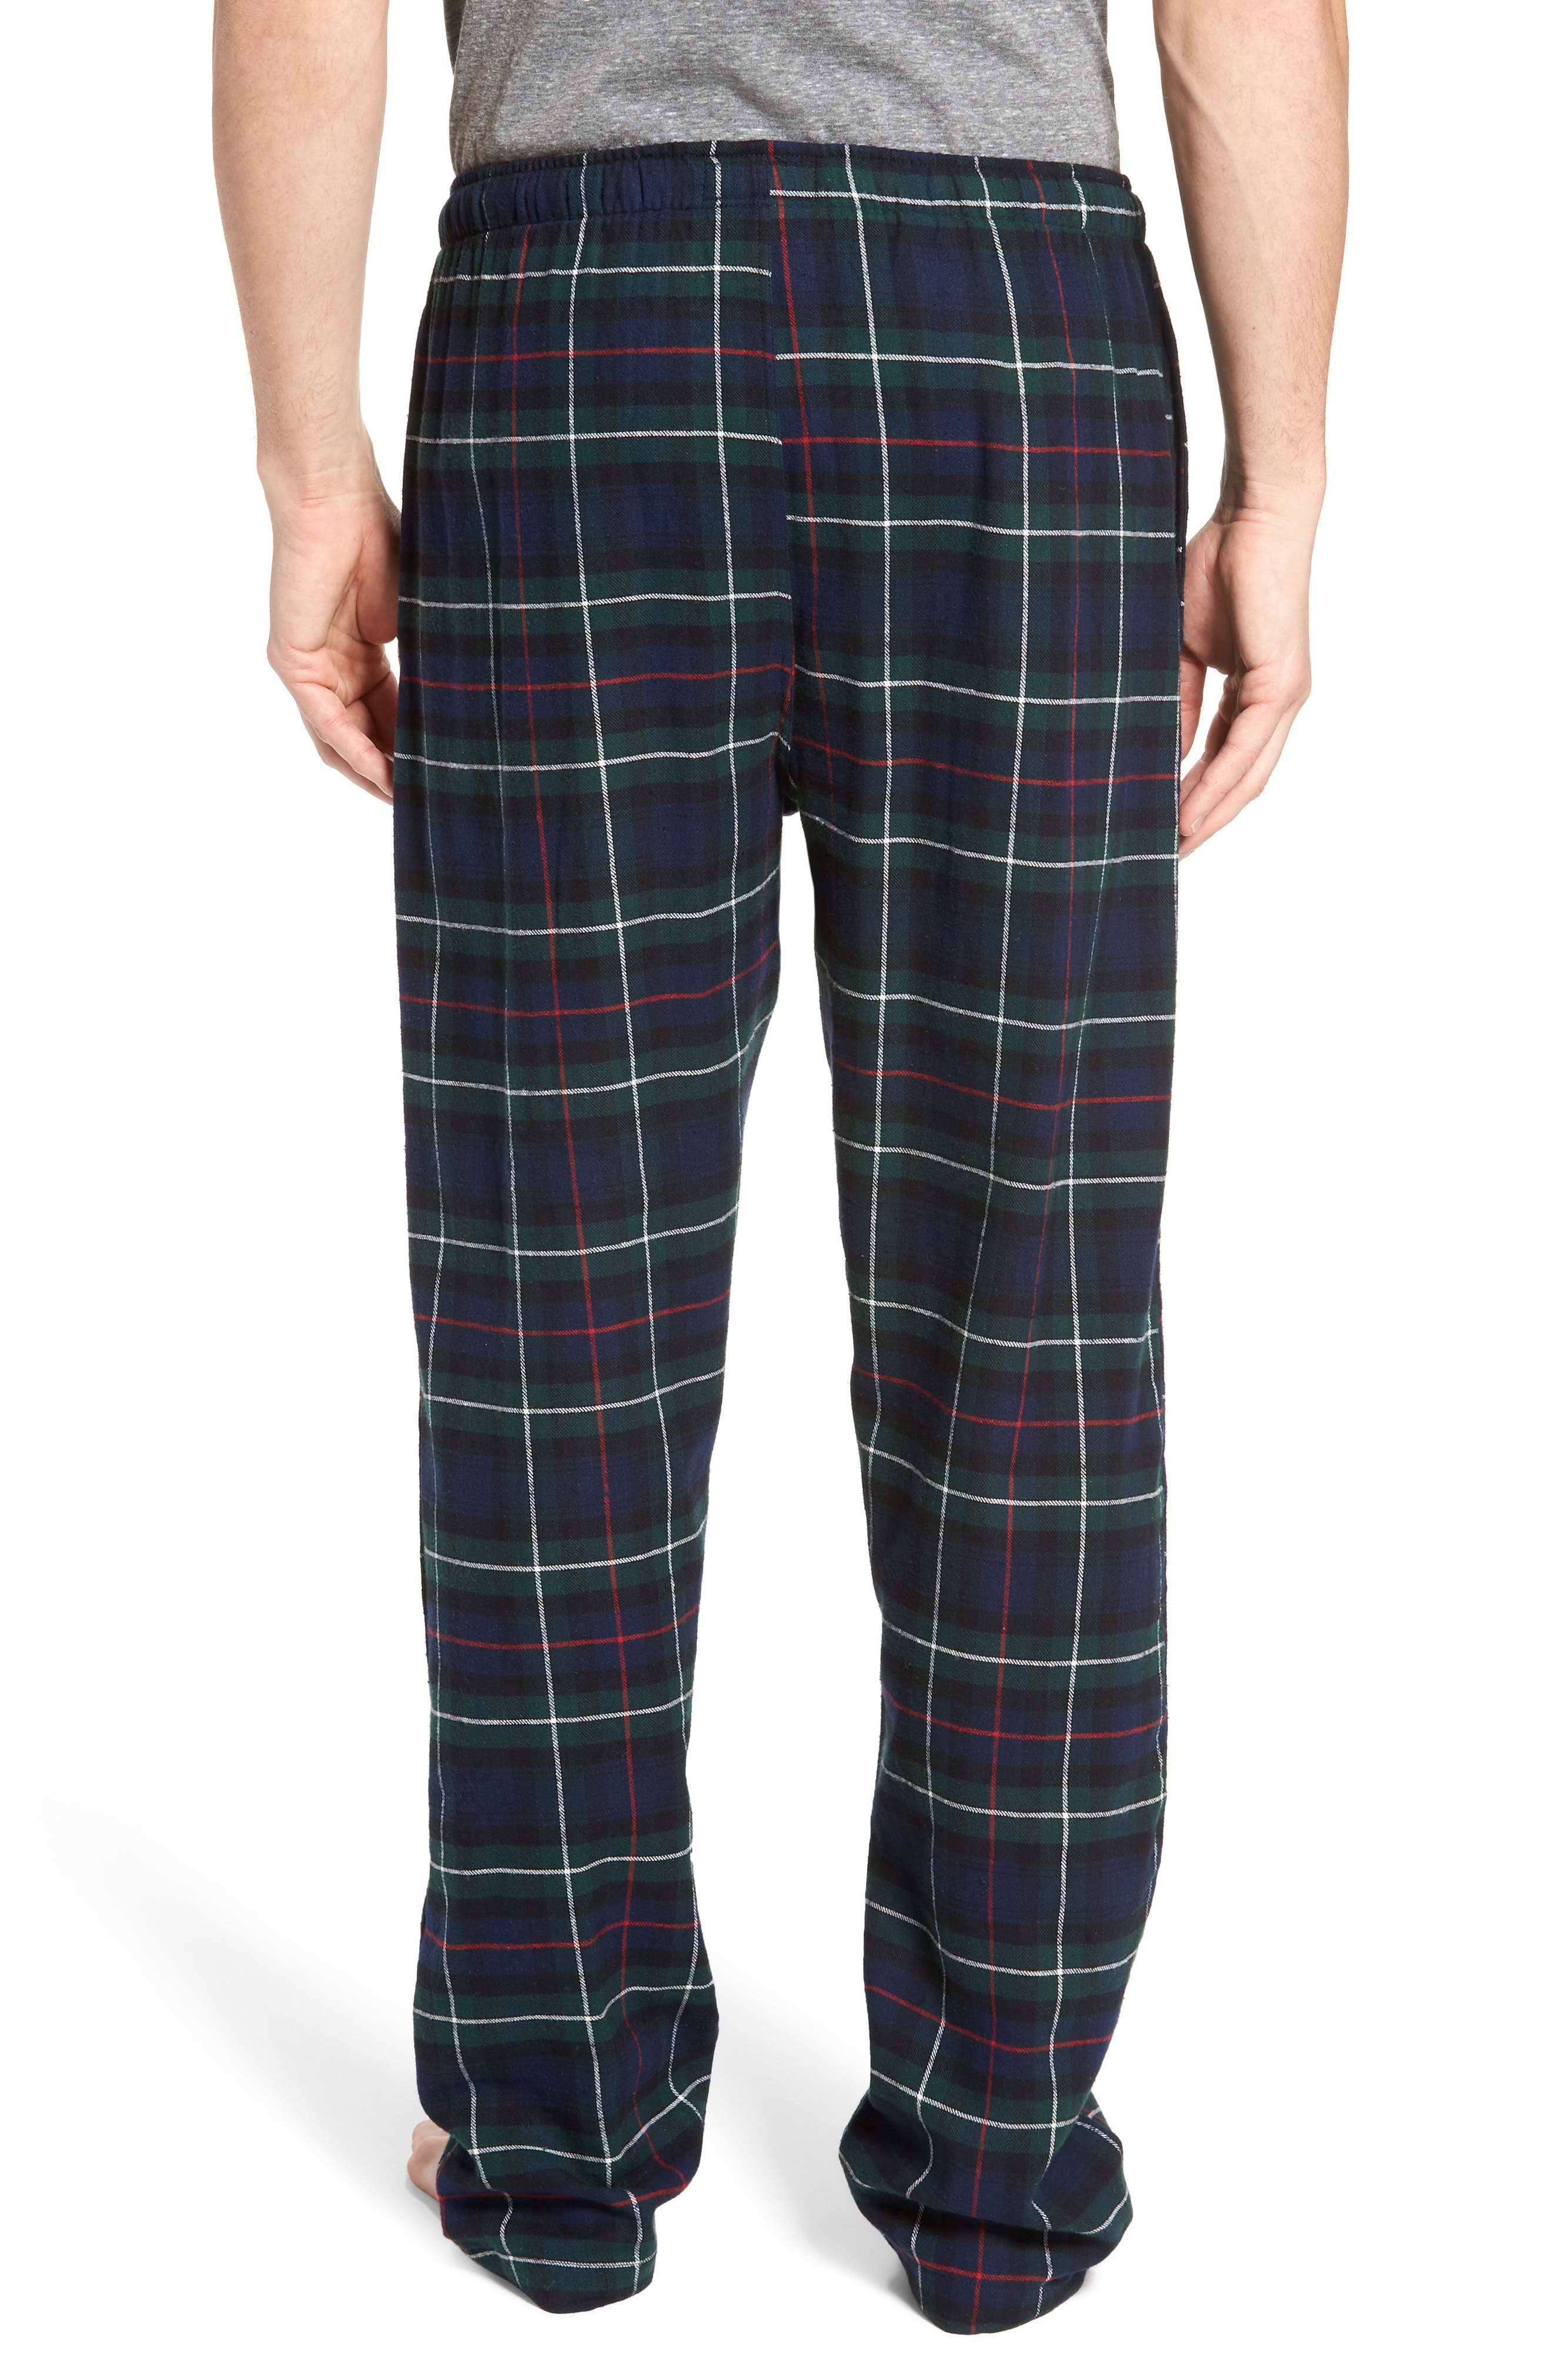 Flannel Pajama Pants,                             Alternate thumbnail 2, color,                             Blackwatch/ Cruise Navy/ Gold